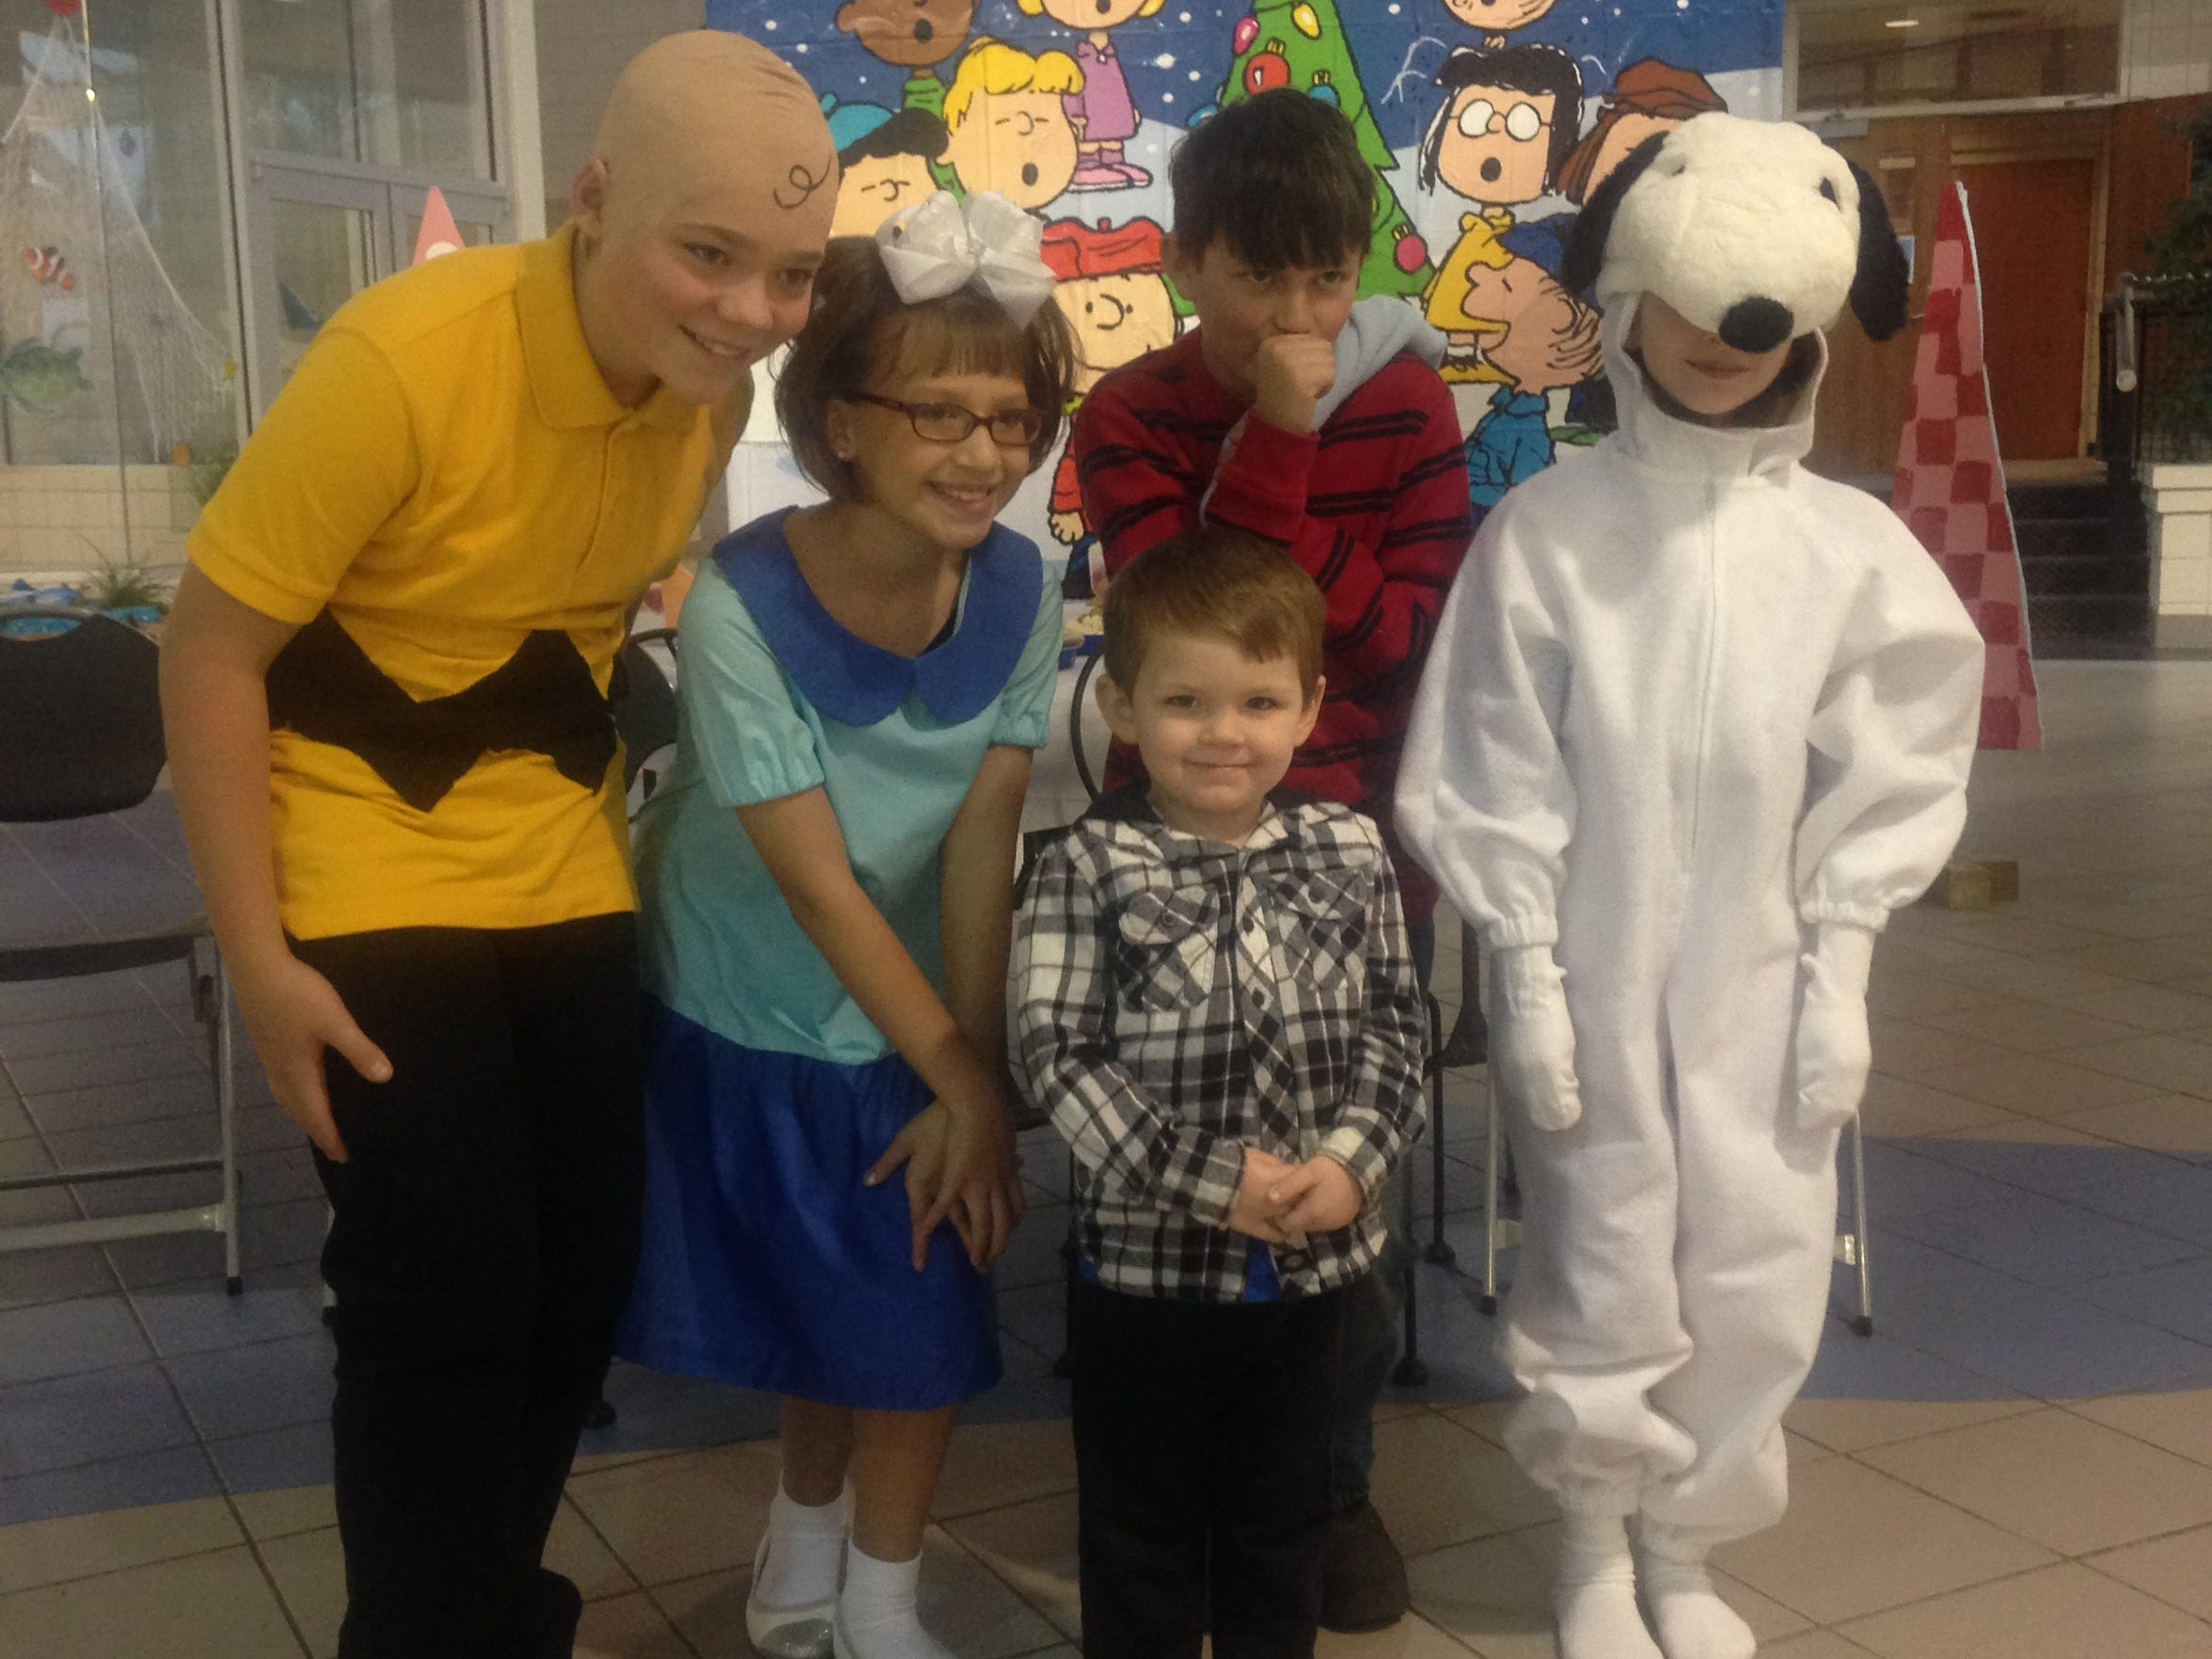 See 'Charlie Brown Christmas' on stage at Patterson Park Community Center on Dec. 11-13.